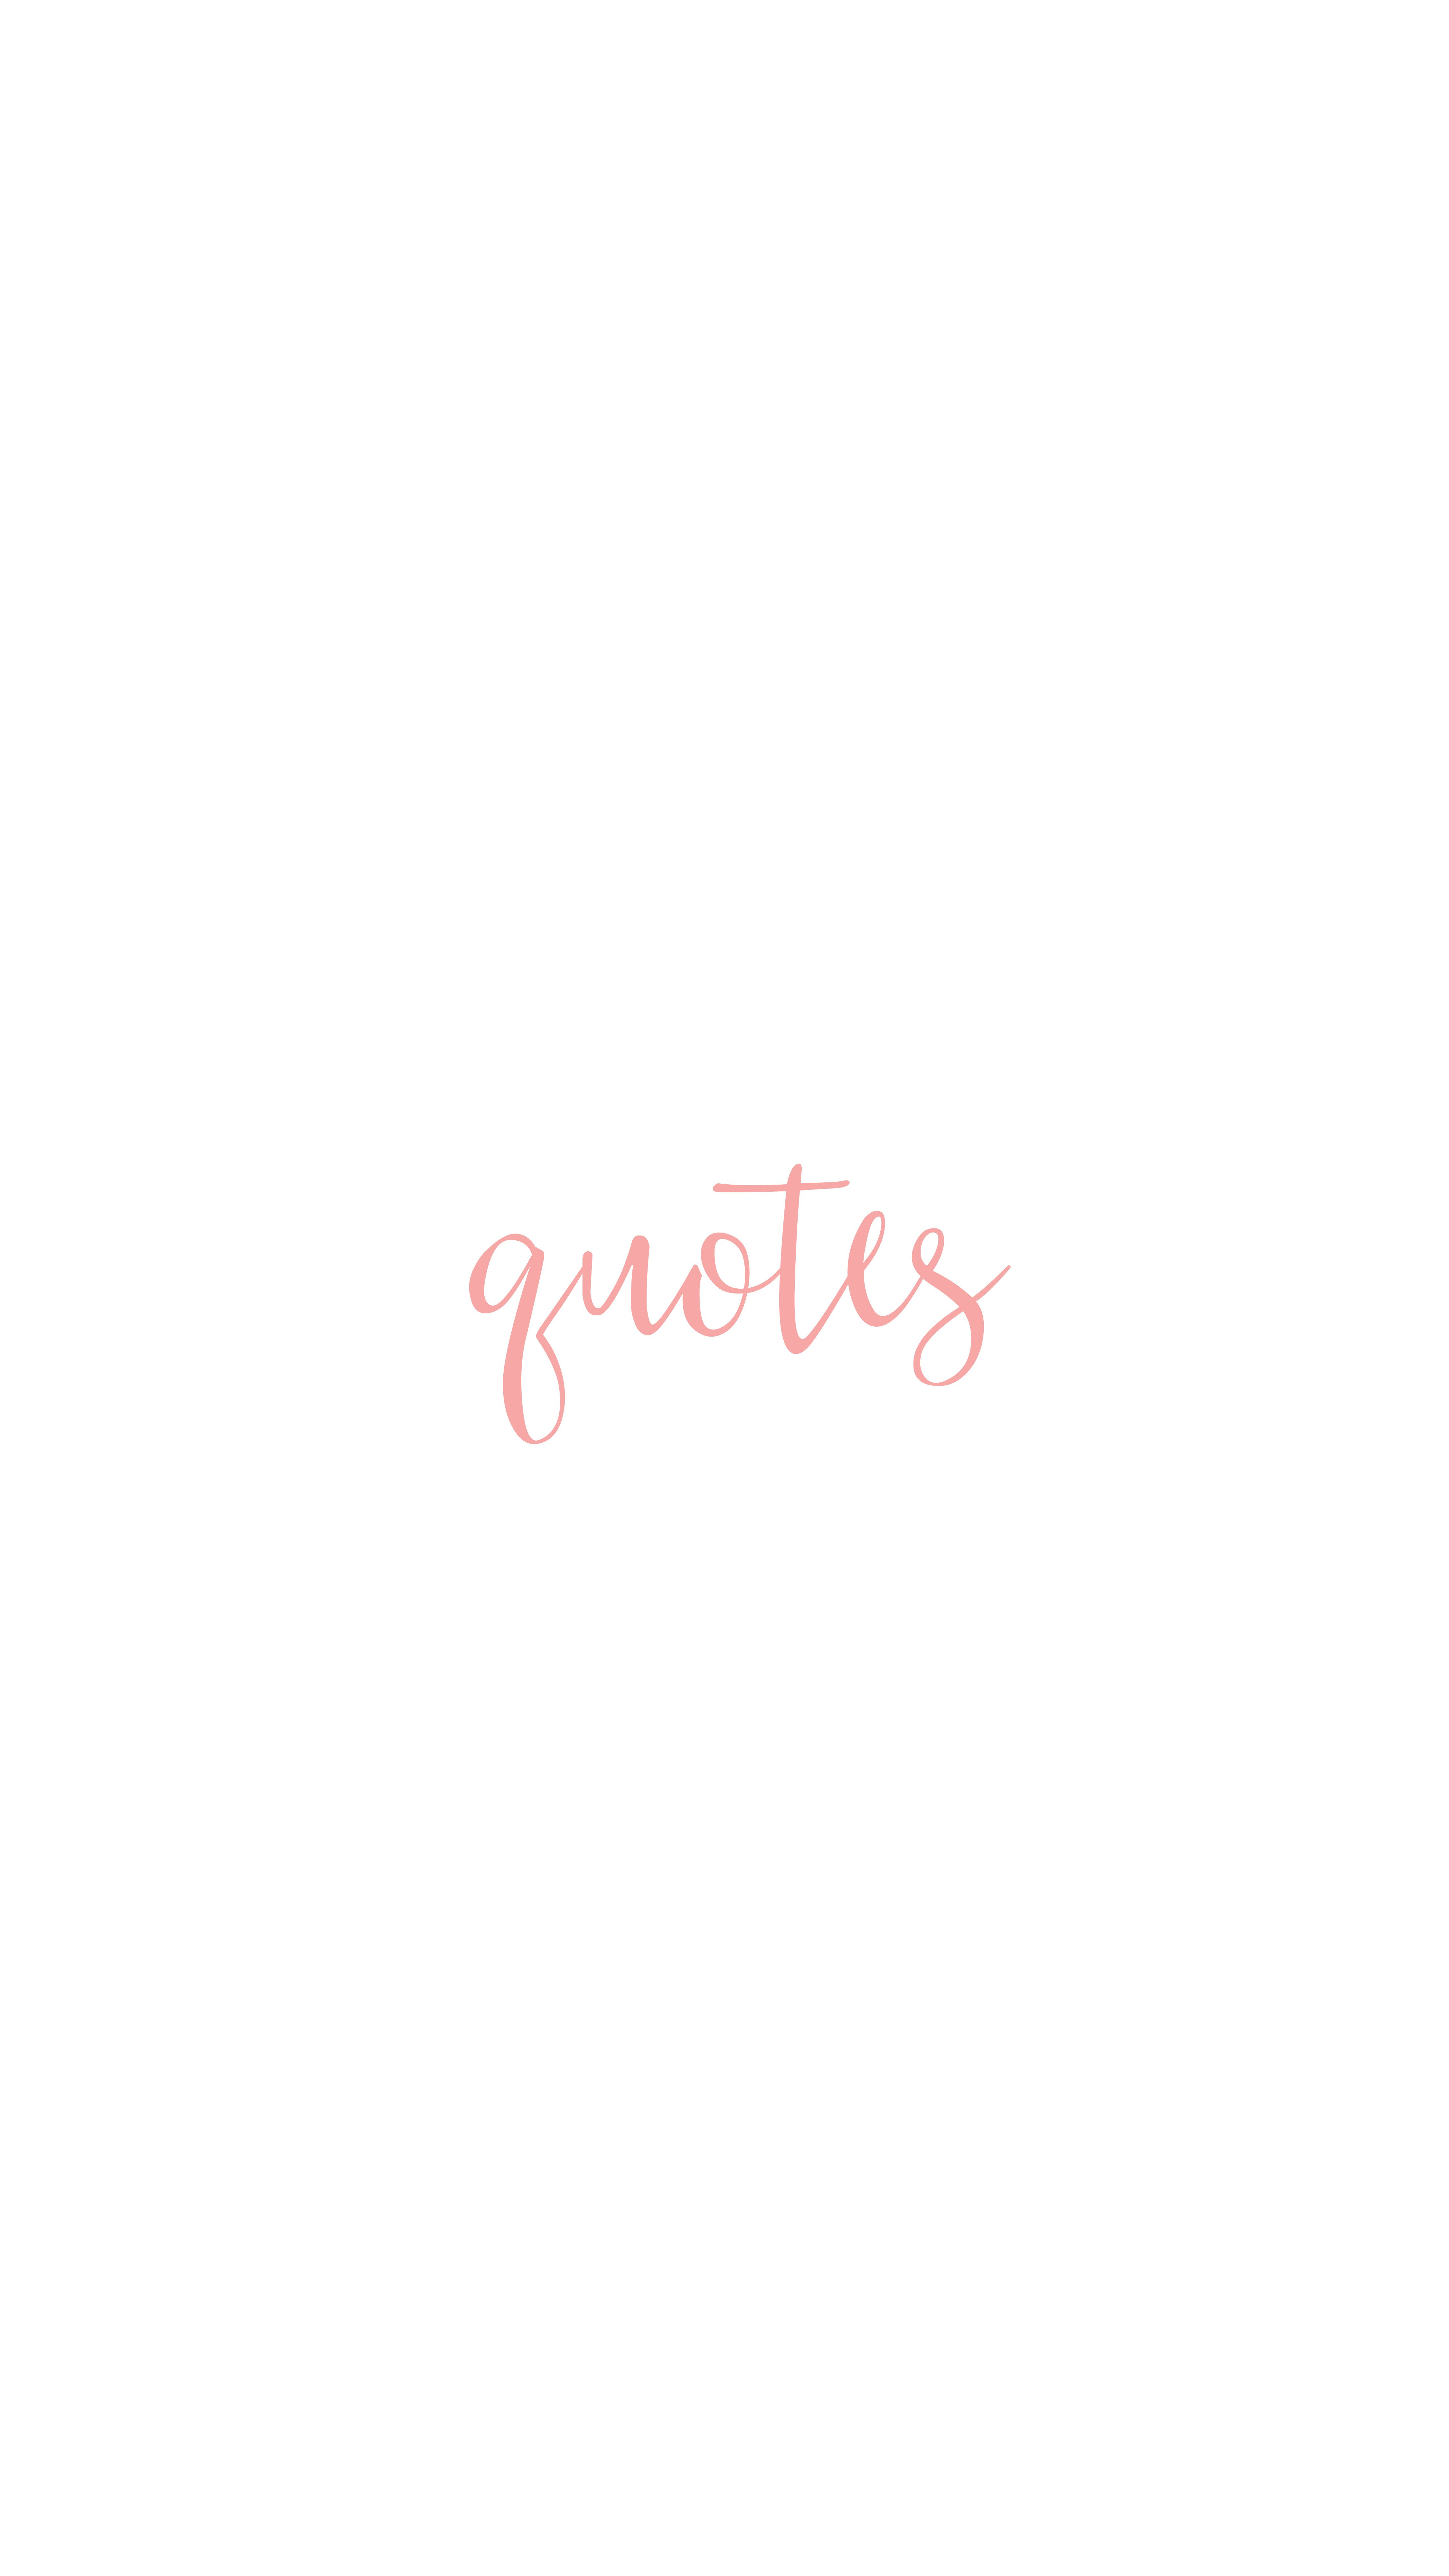 Quotes Wallpapers For Instagram Highlights